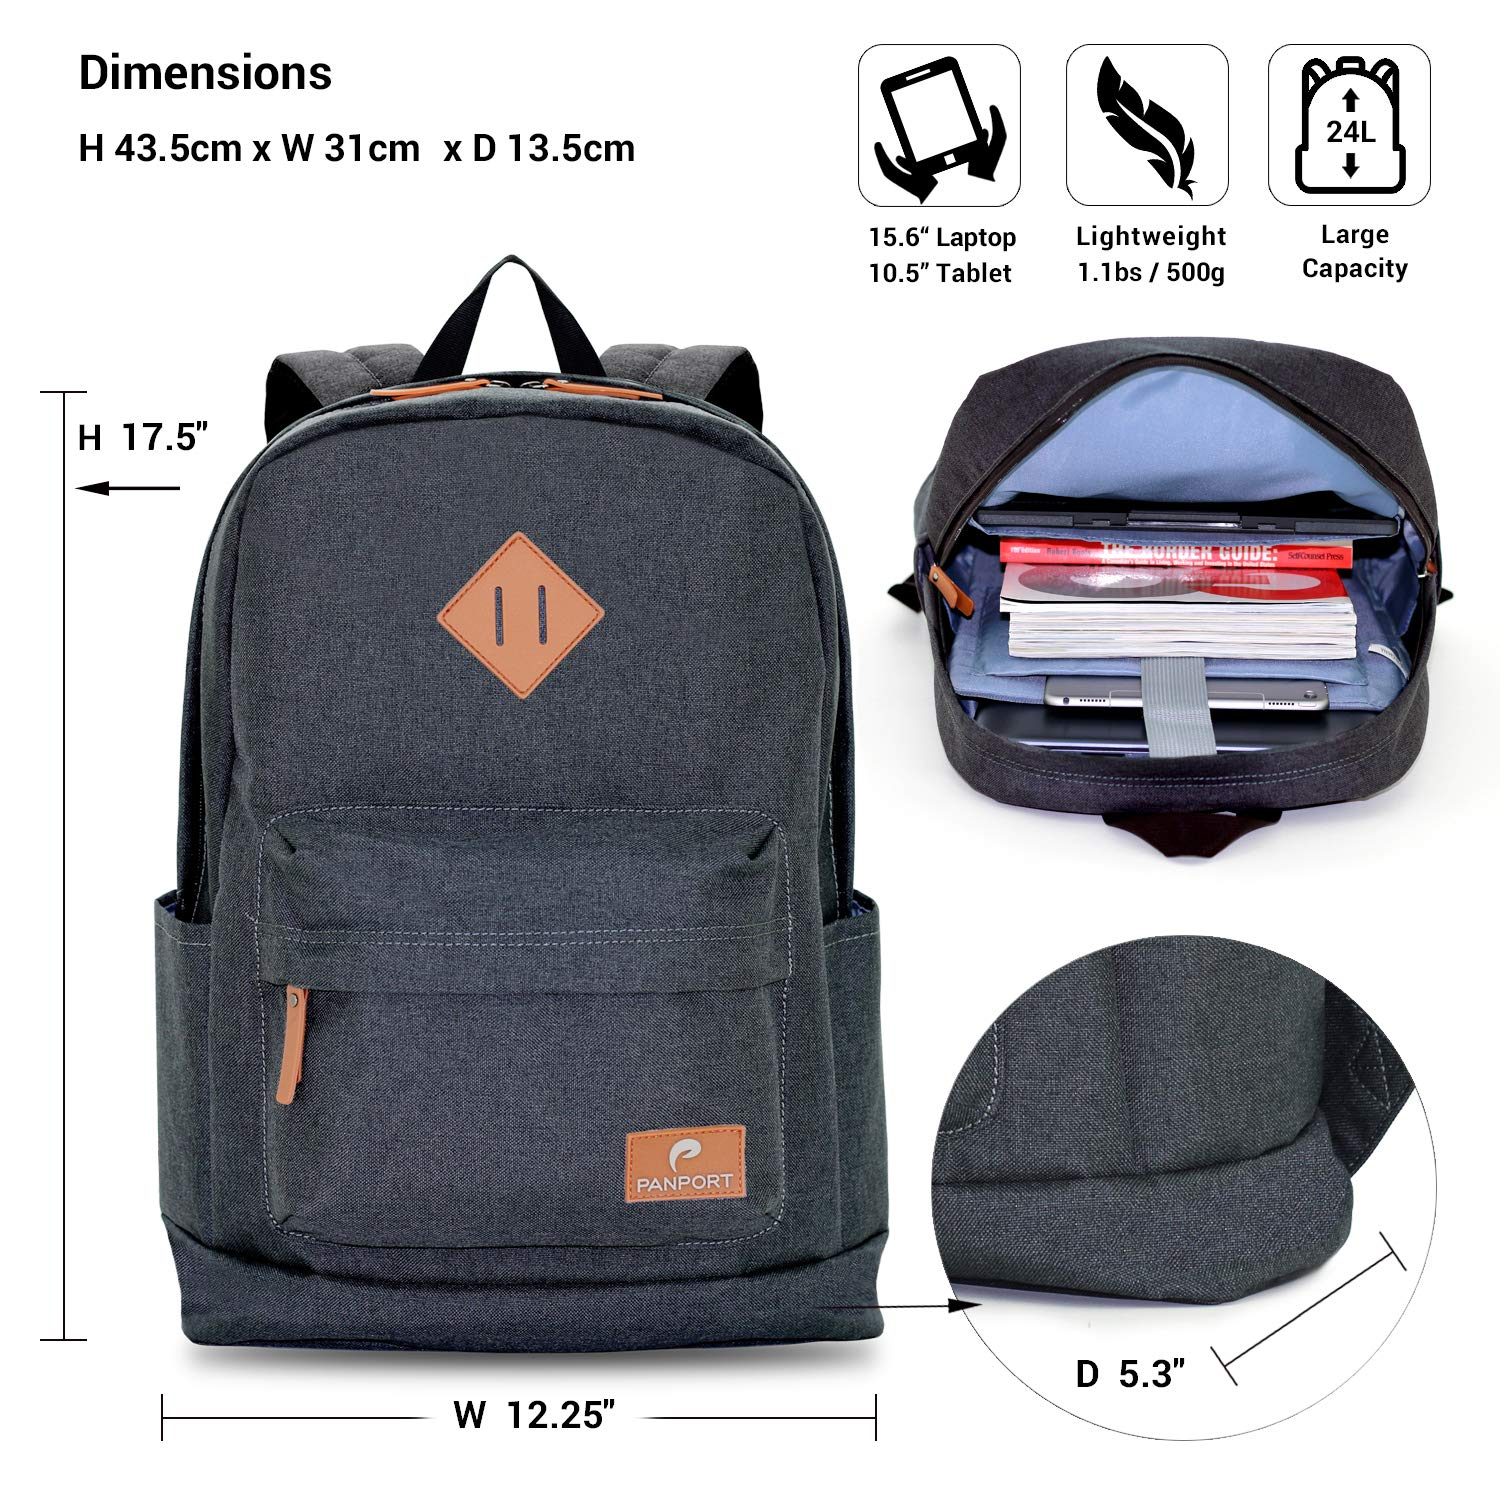 Panport Classic Laptop Computer Backpack Shockproof Lightweight Bookbag Charcoal